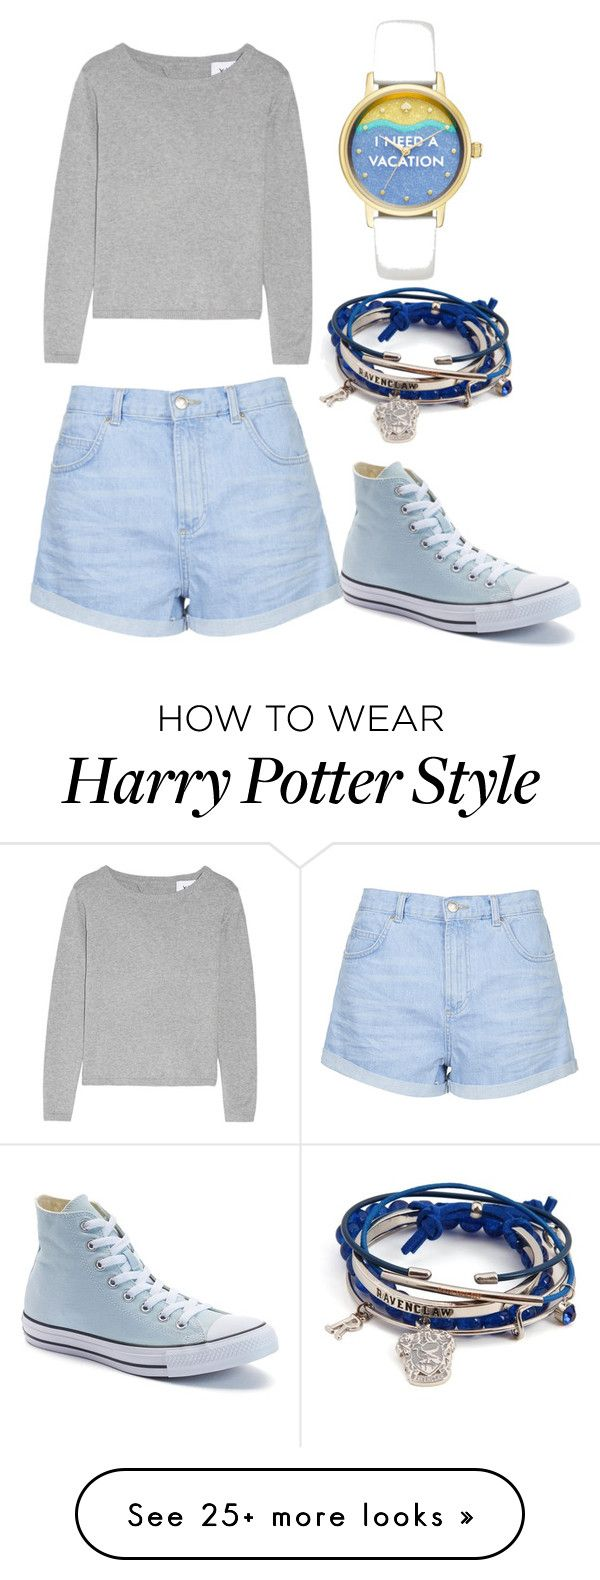 """Untitled #17"" by chaoticstars on Polyvore featuring Topshop, Kate Spade and Converse"